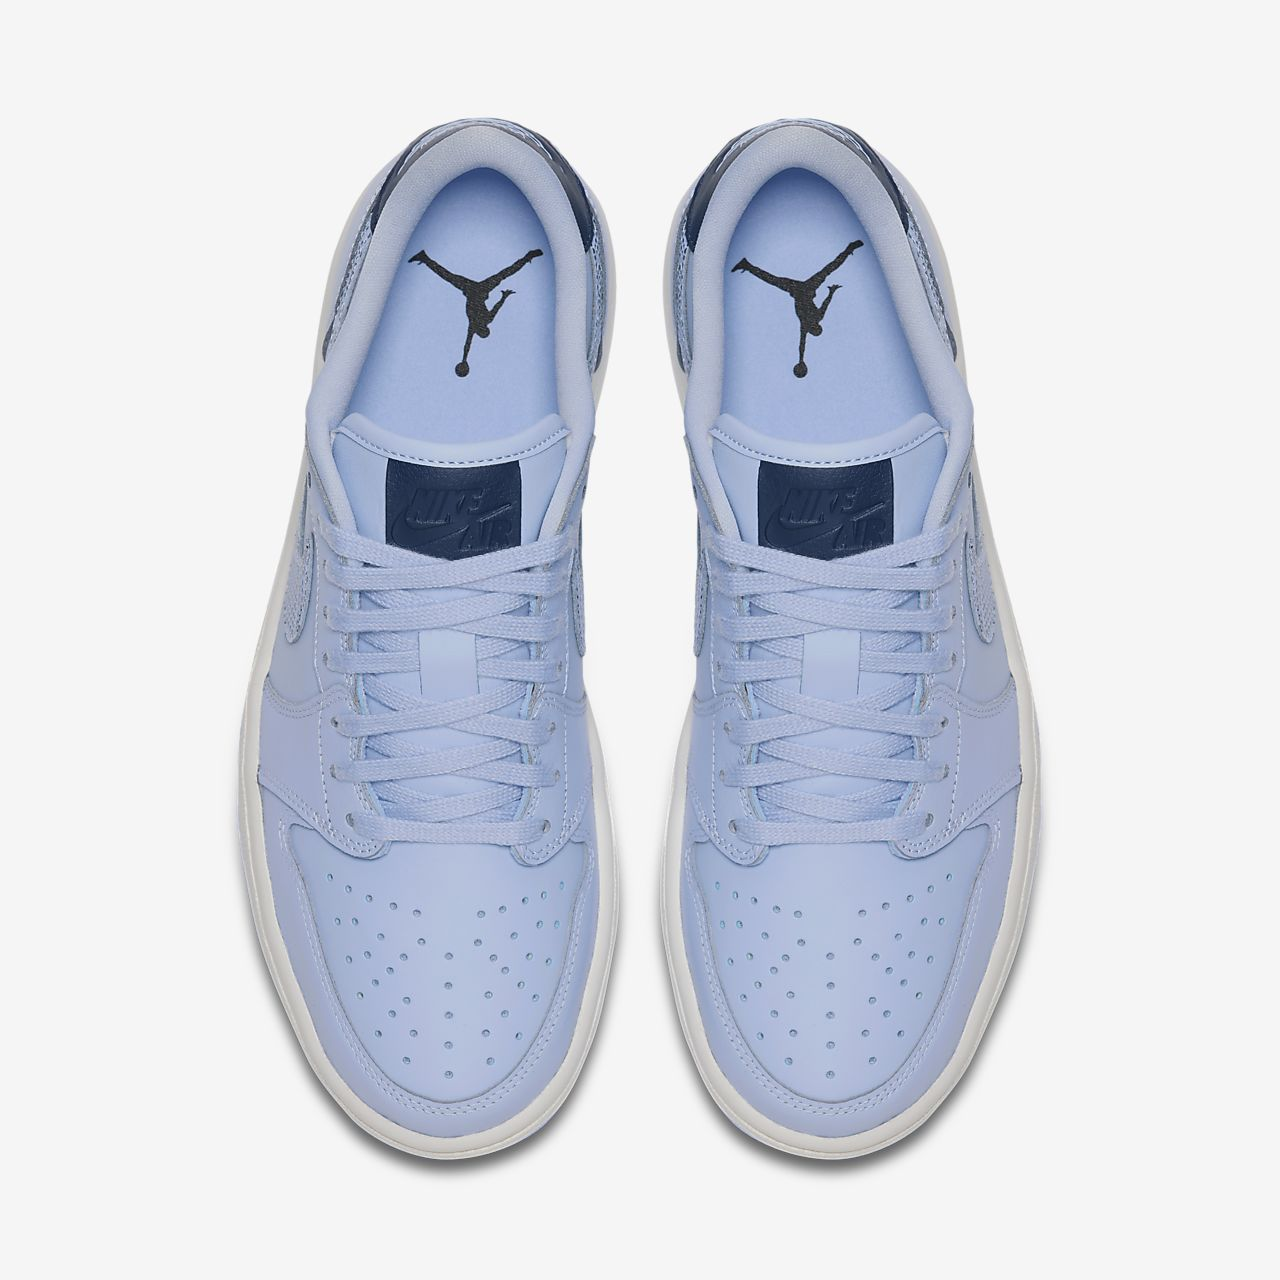 07d746313d94 Air Jordan 1 Retro Low OG Women s Shoe. Nike.com IE